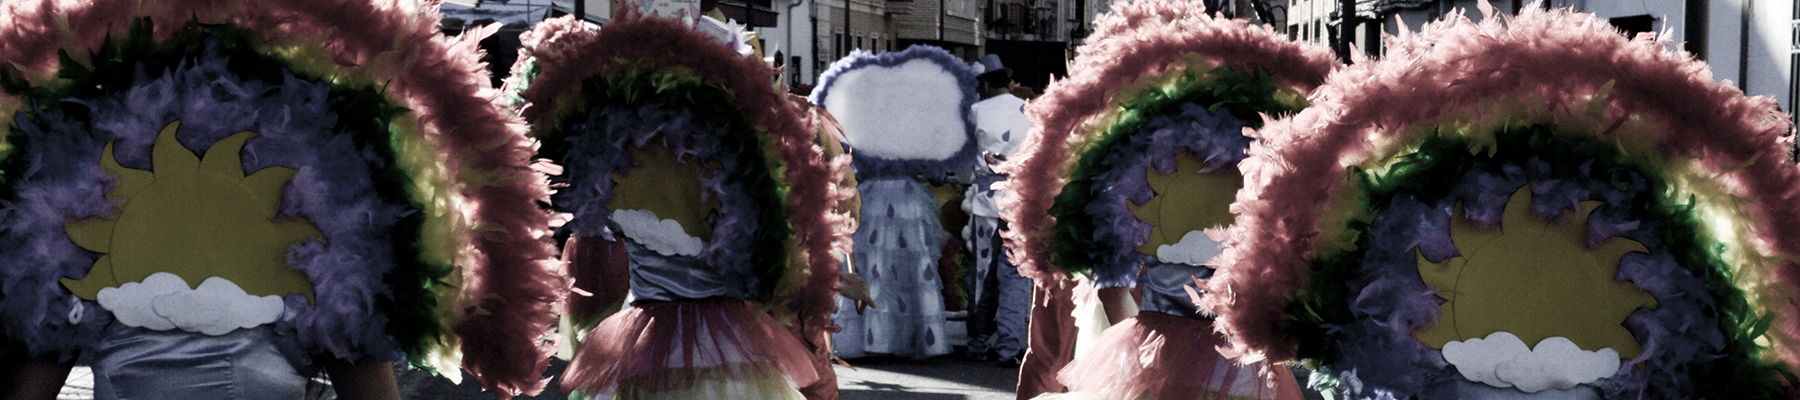 carnival-miguelturra-parade-floats-2014